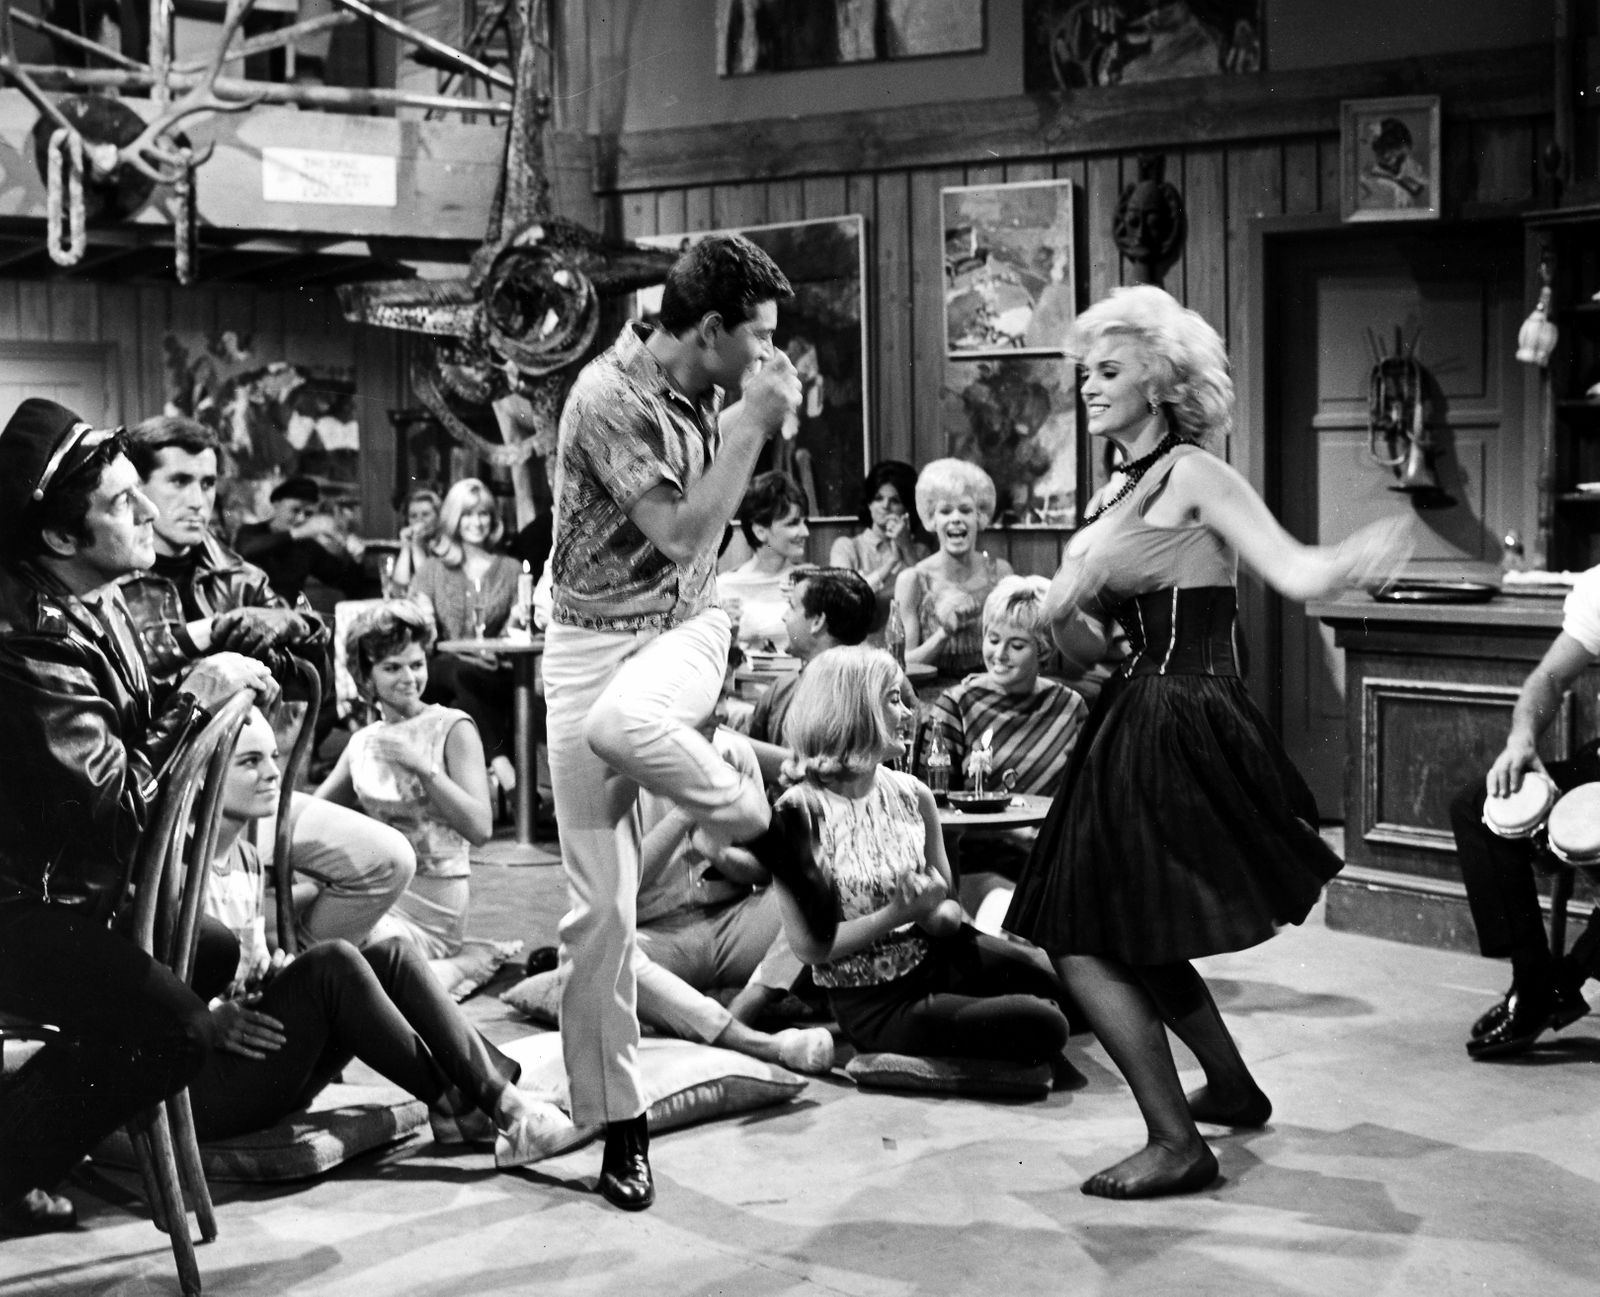 Wate On Werbung - BEACH PARTY, 1963. /nFrankie Avalon and Eva Six dancing the Twist in a scene from 'Beach Party,' 1963.